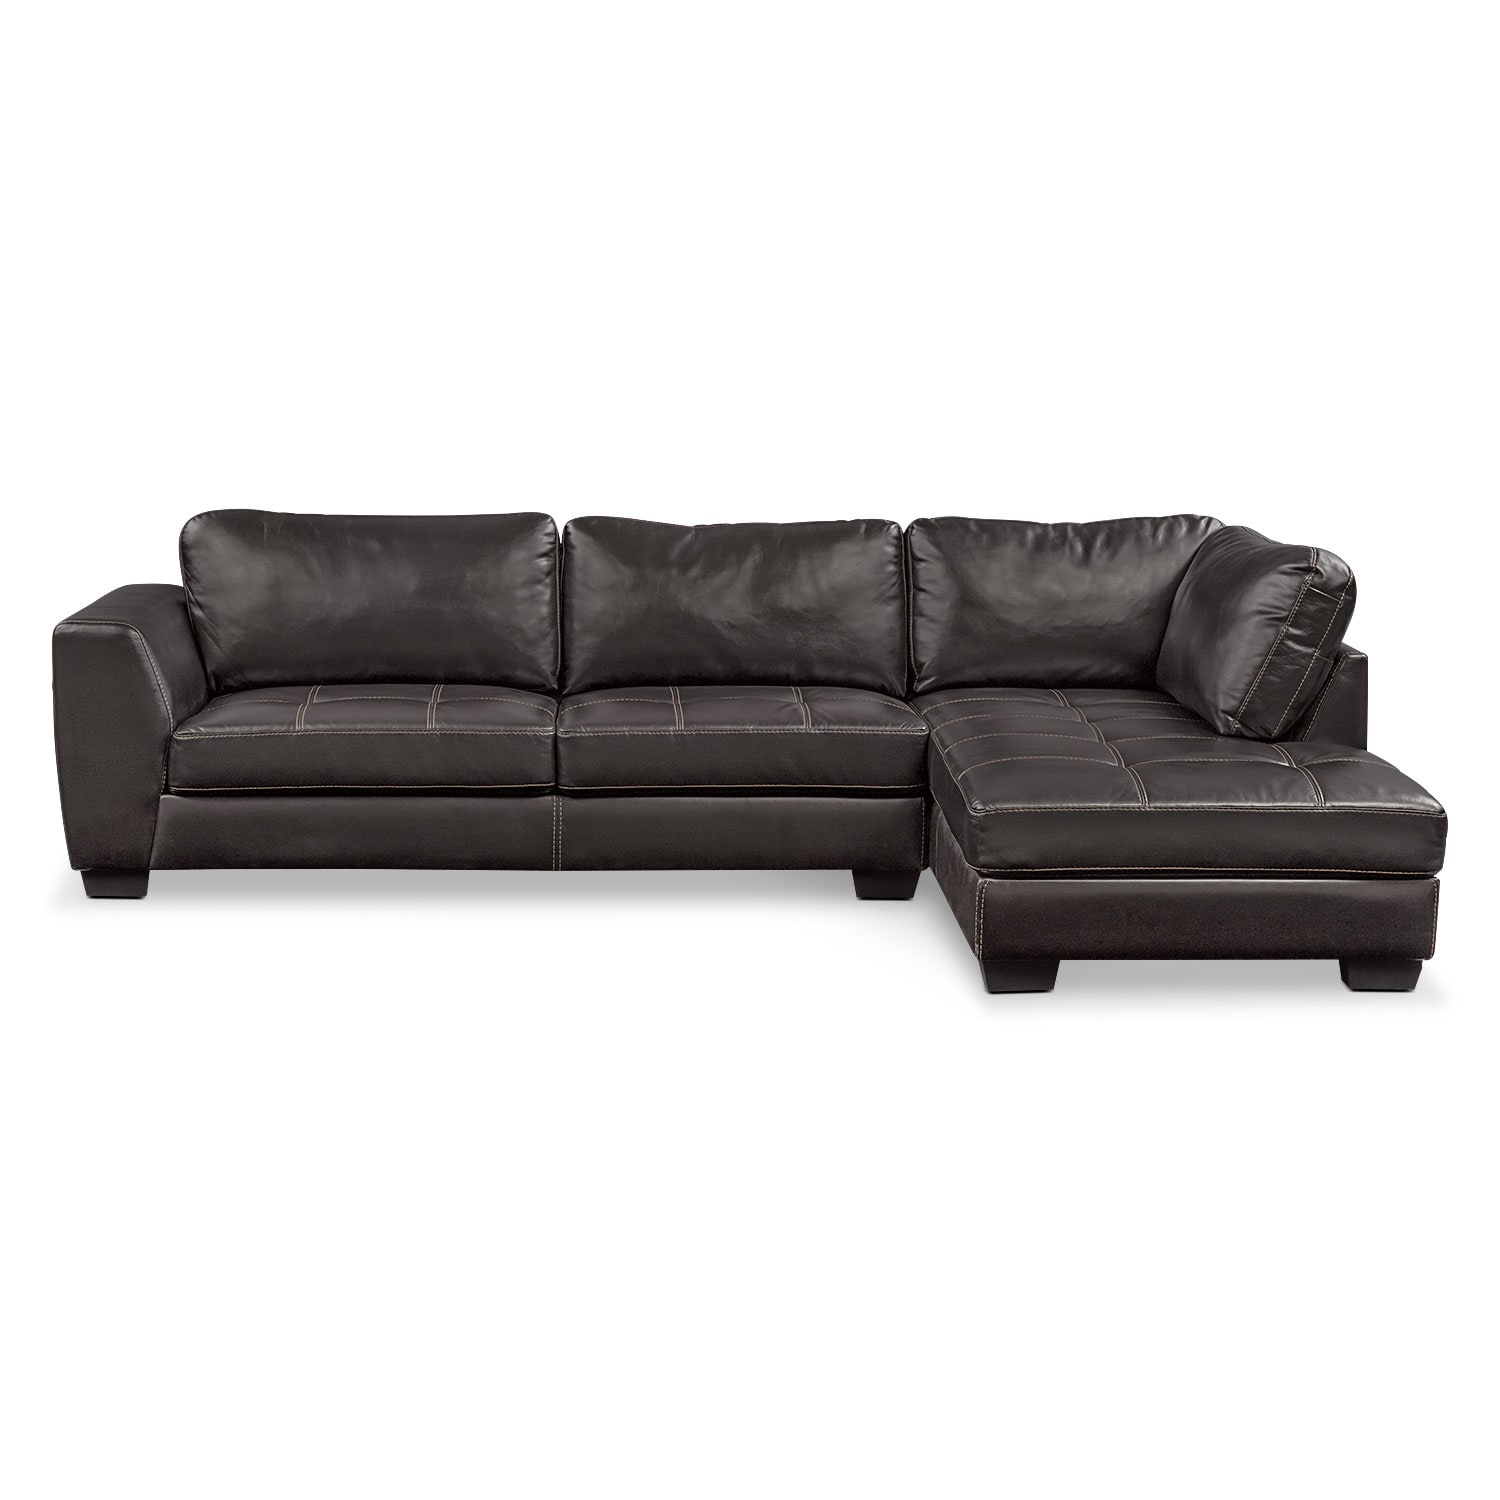 American Signature Furniture: Santana 2-Piece Sectional With Right-Facing Chaise